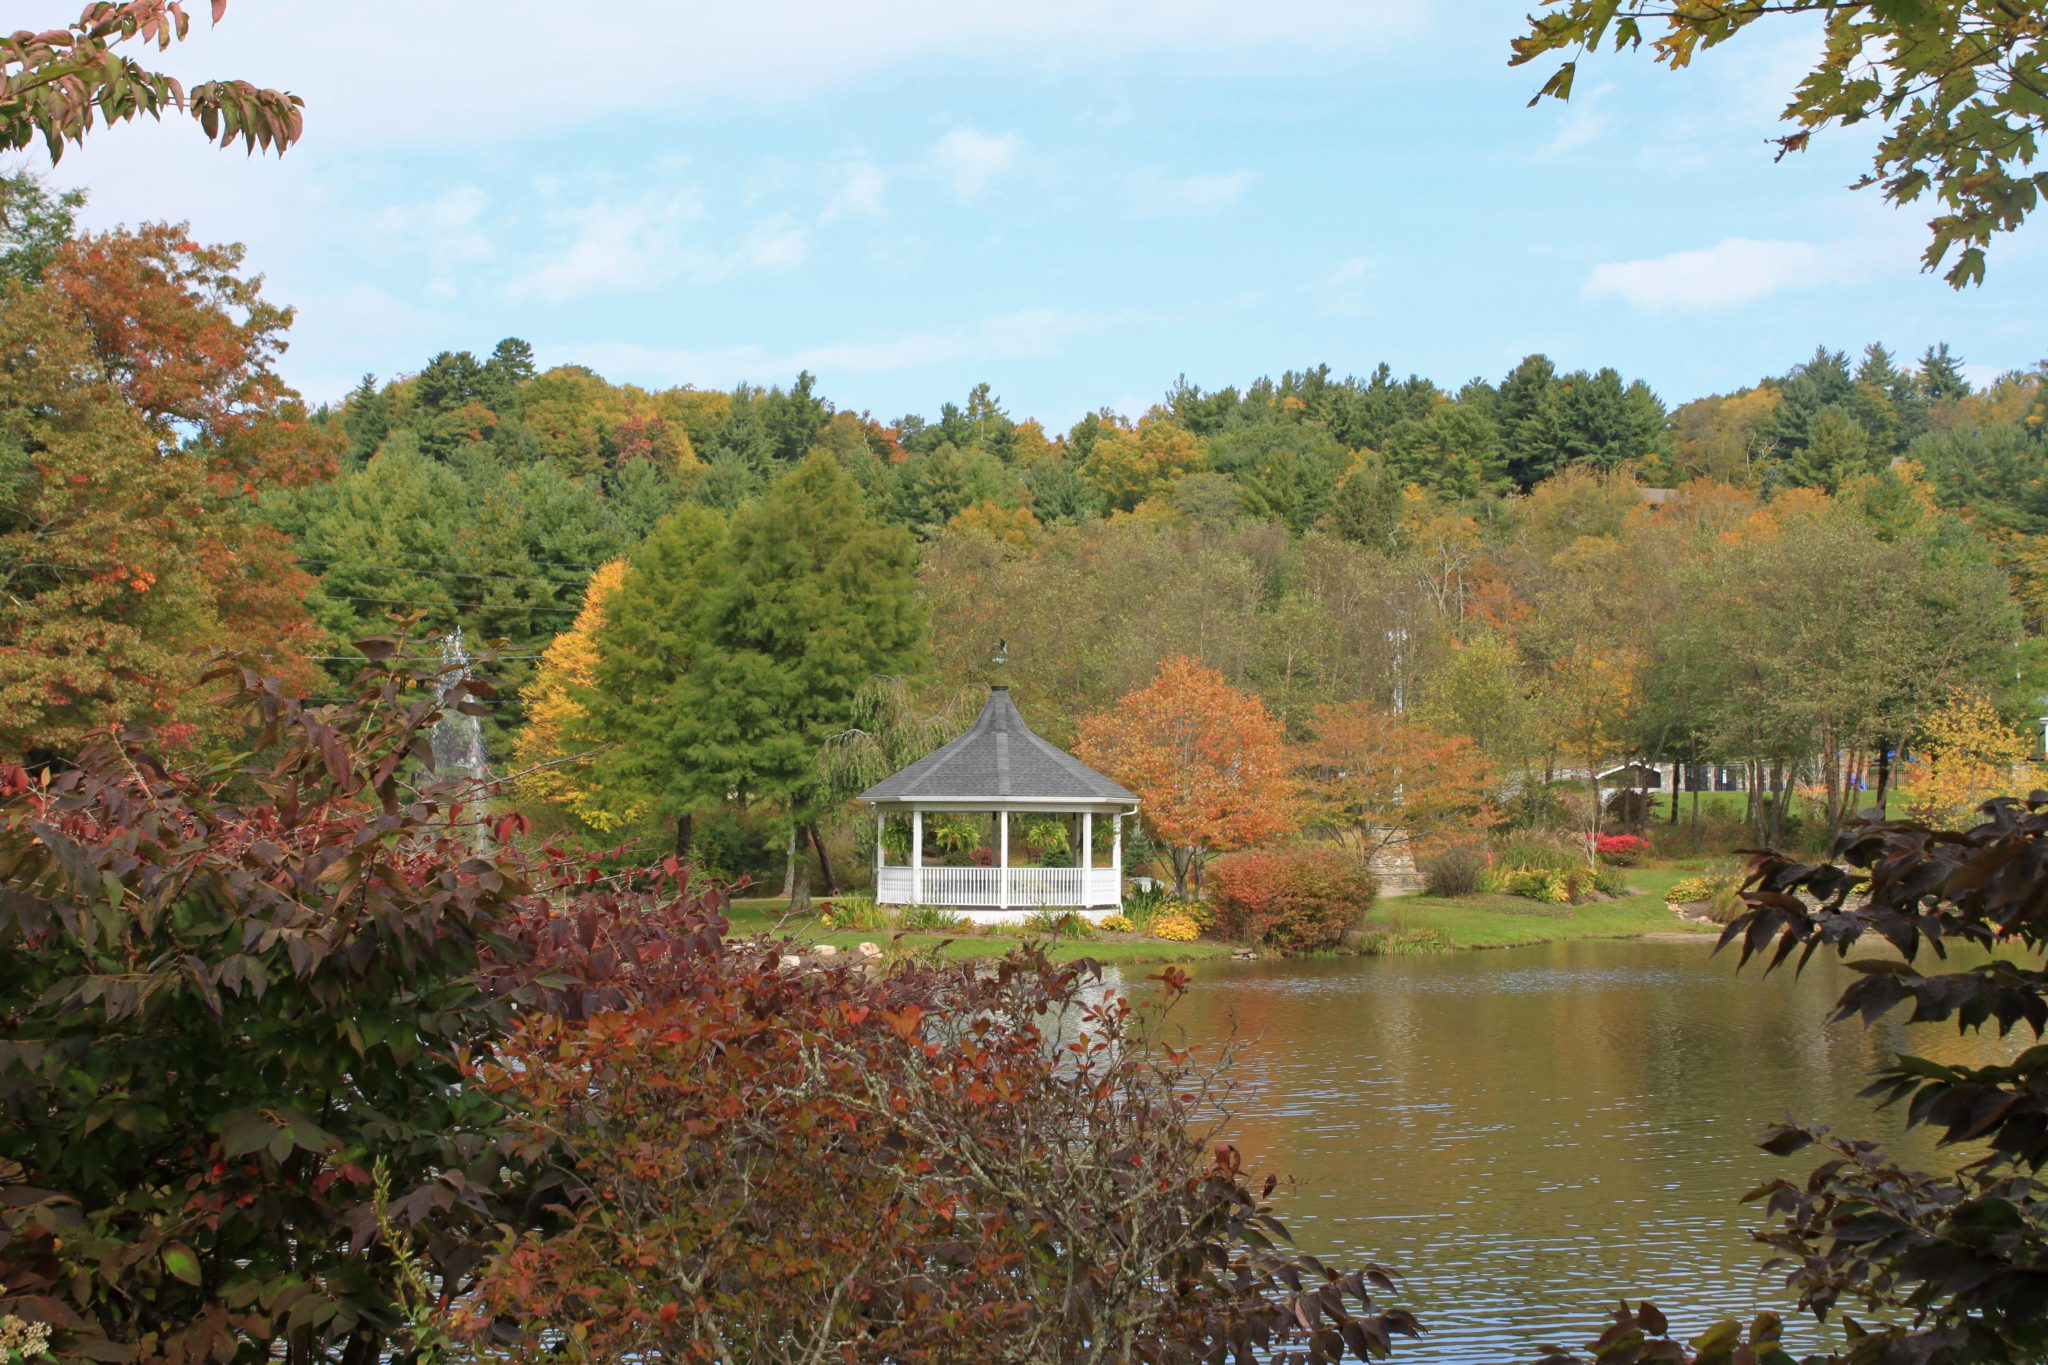 broyhill park in the fall